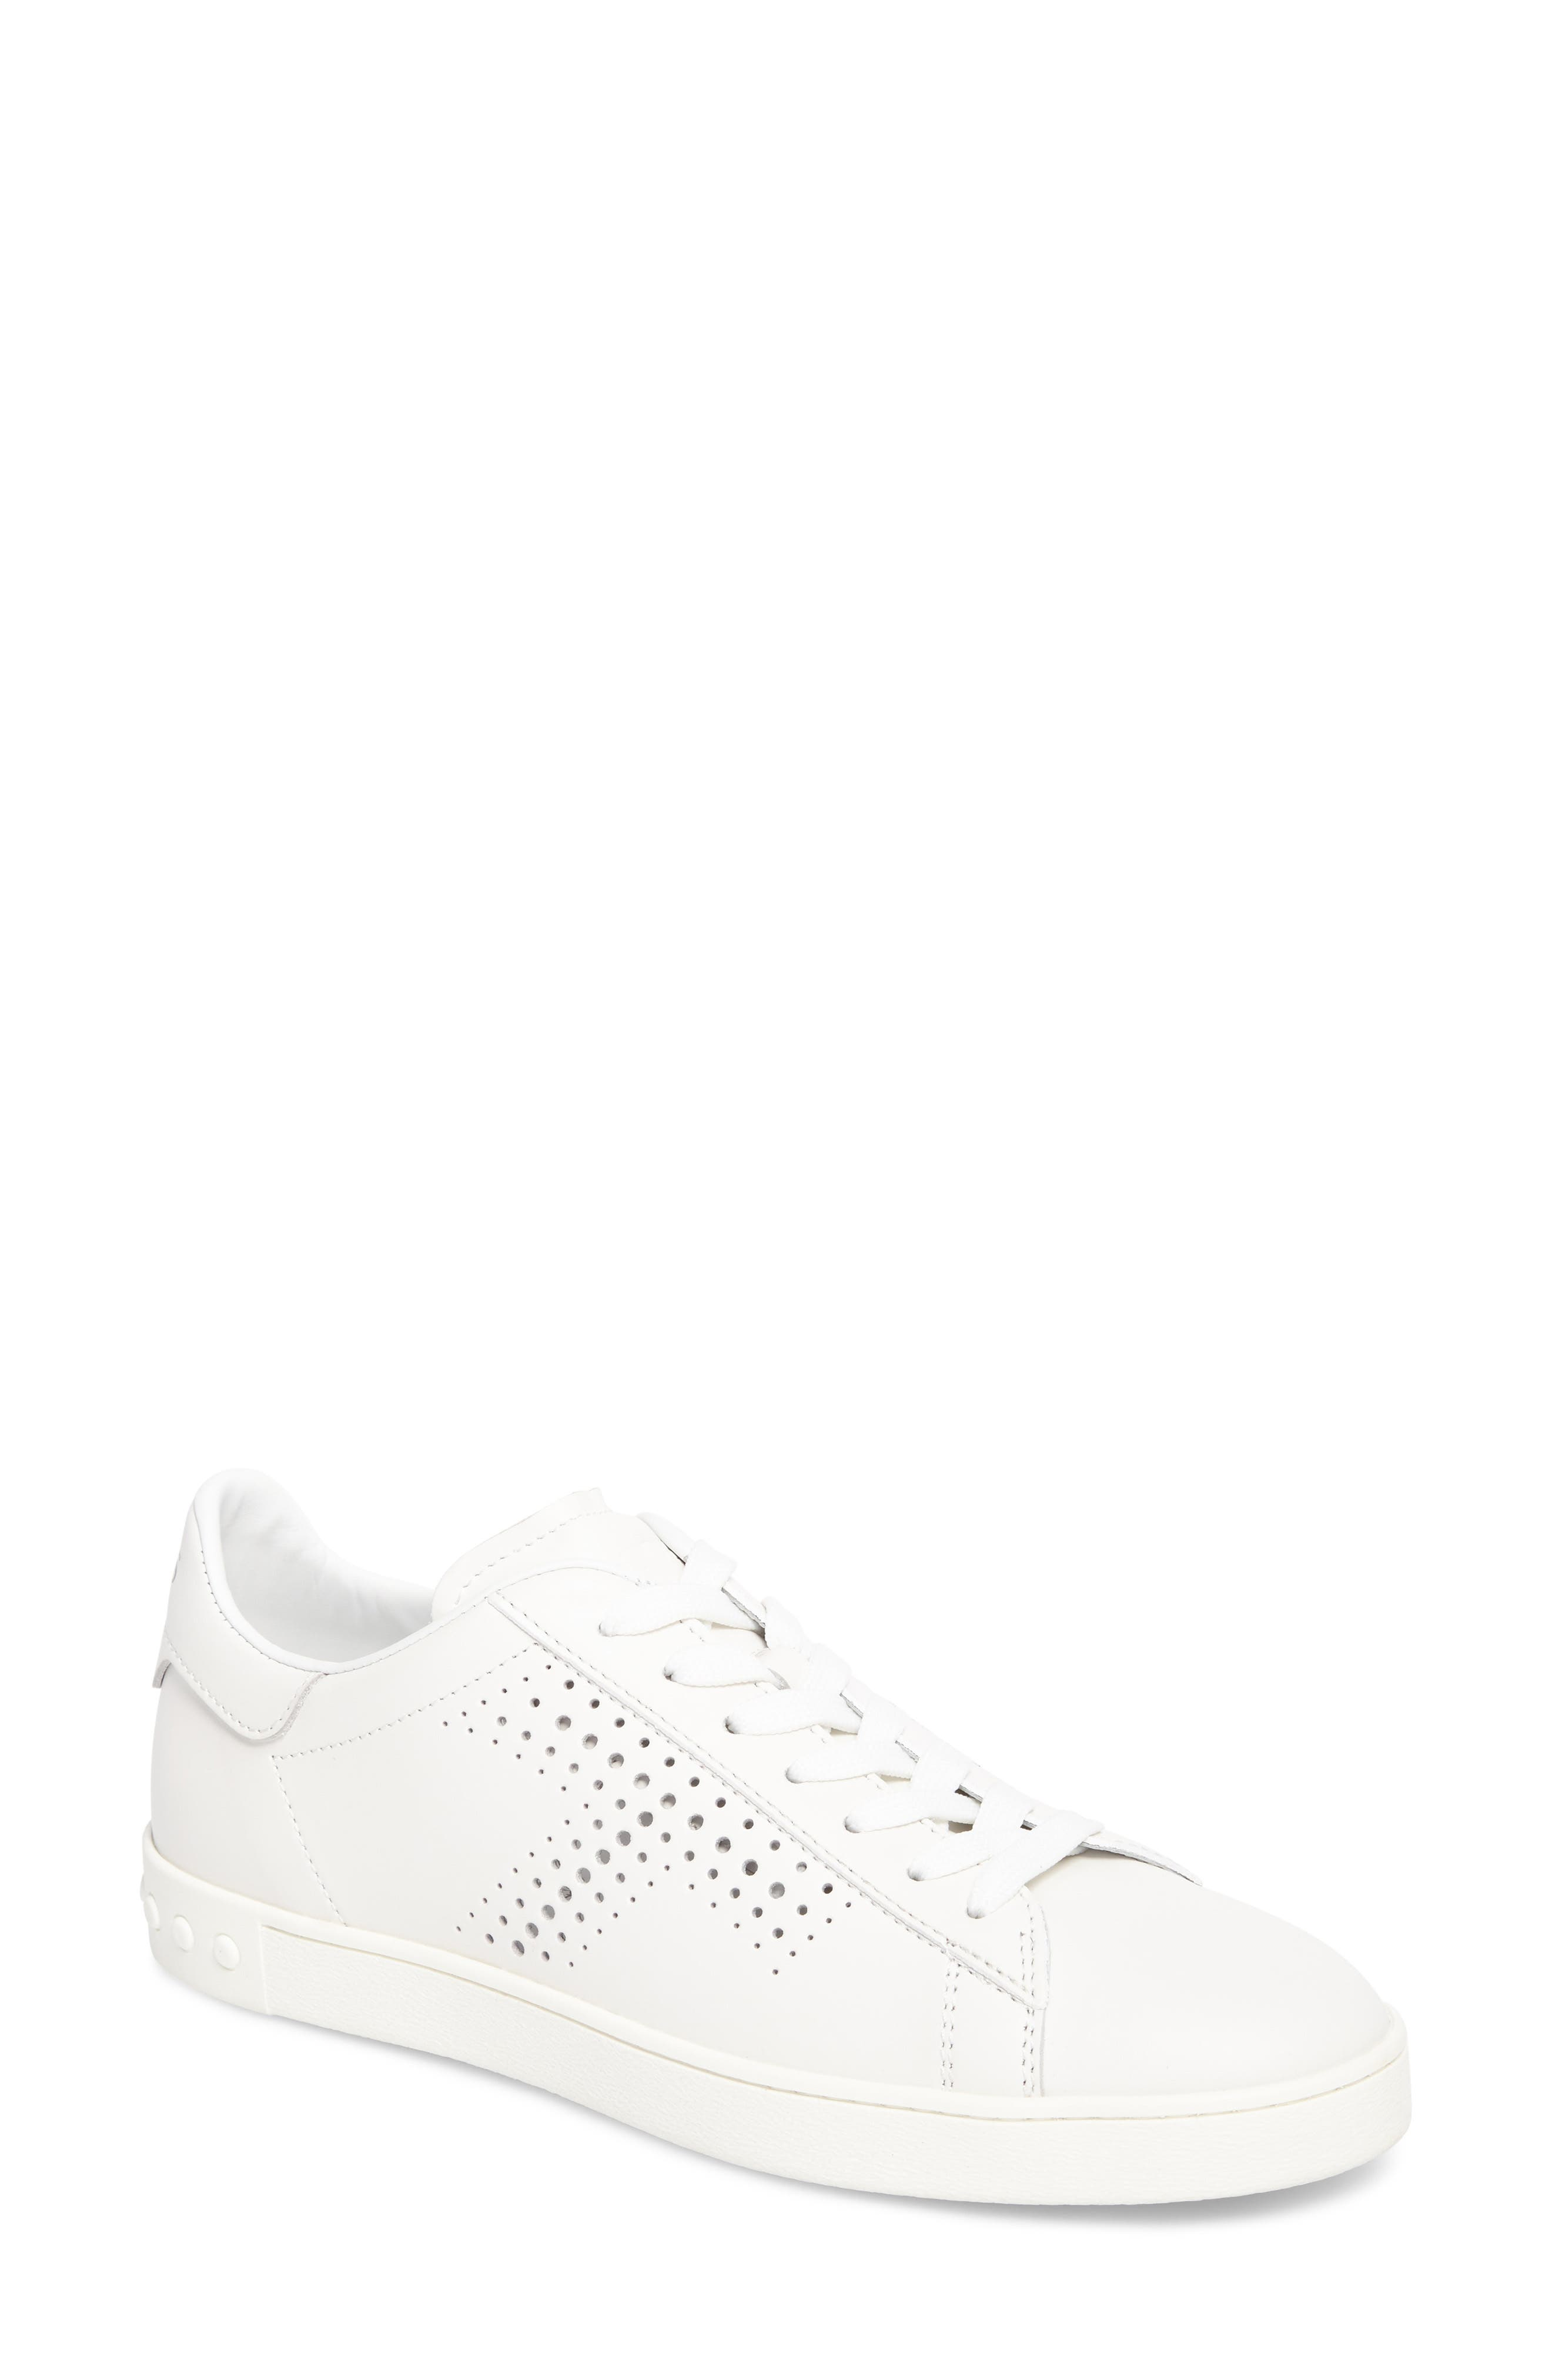 Perforated T Sneaker,                             Main thumbnail 1, color,                             White